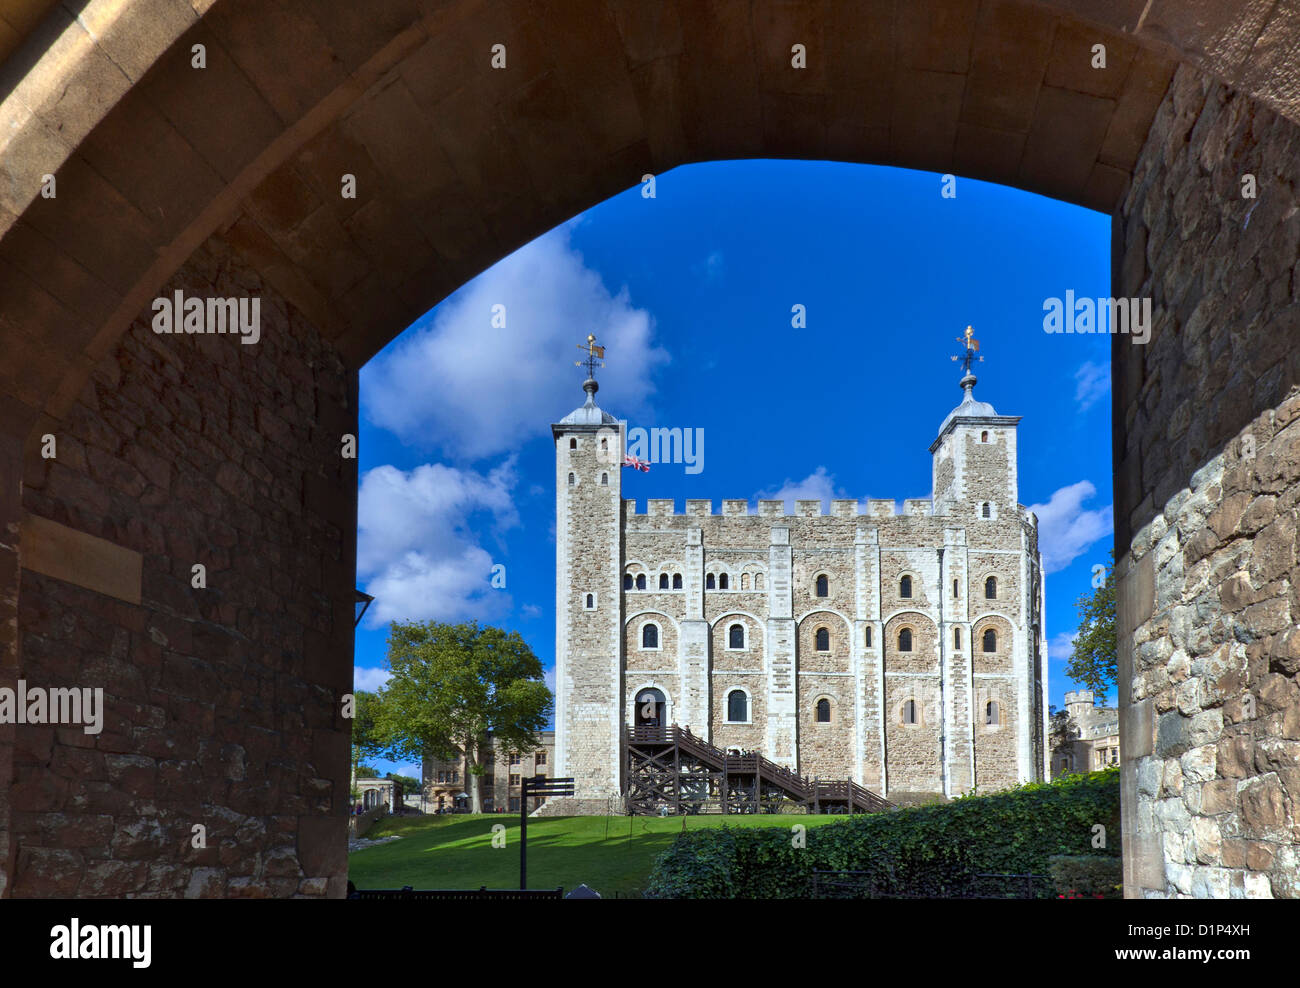 The White Tower at The Tower of London viewed through stone entrance archway London EC3 UK - Stock Image